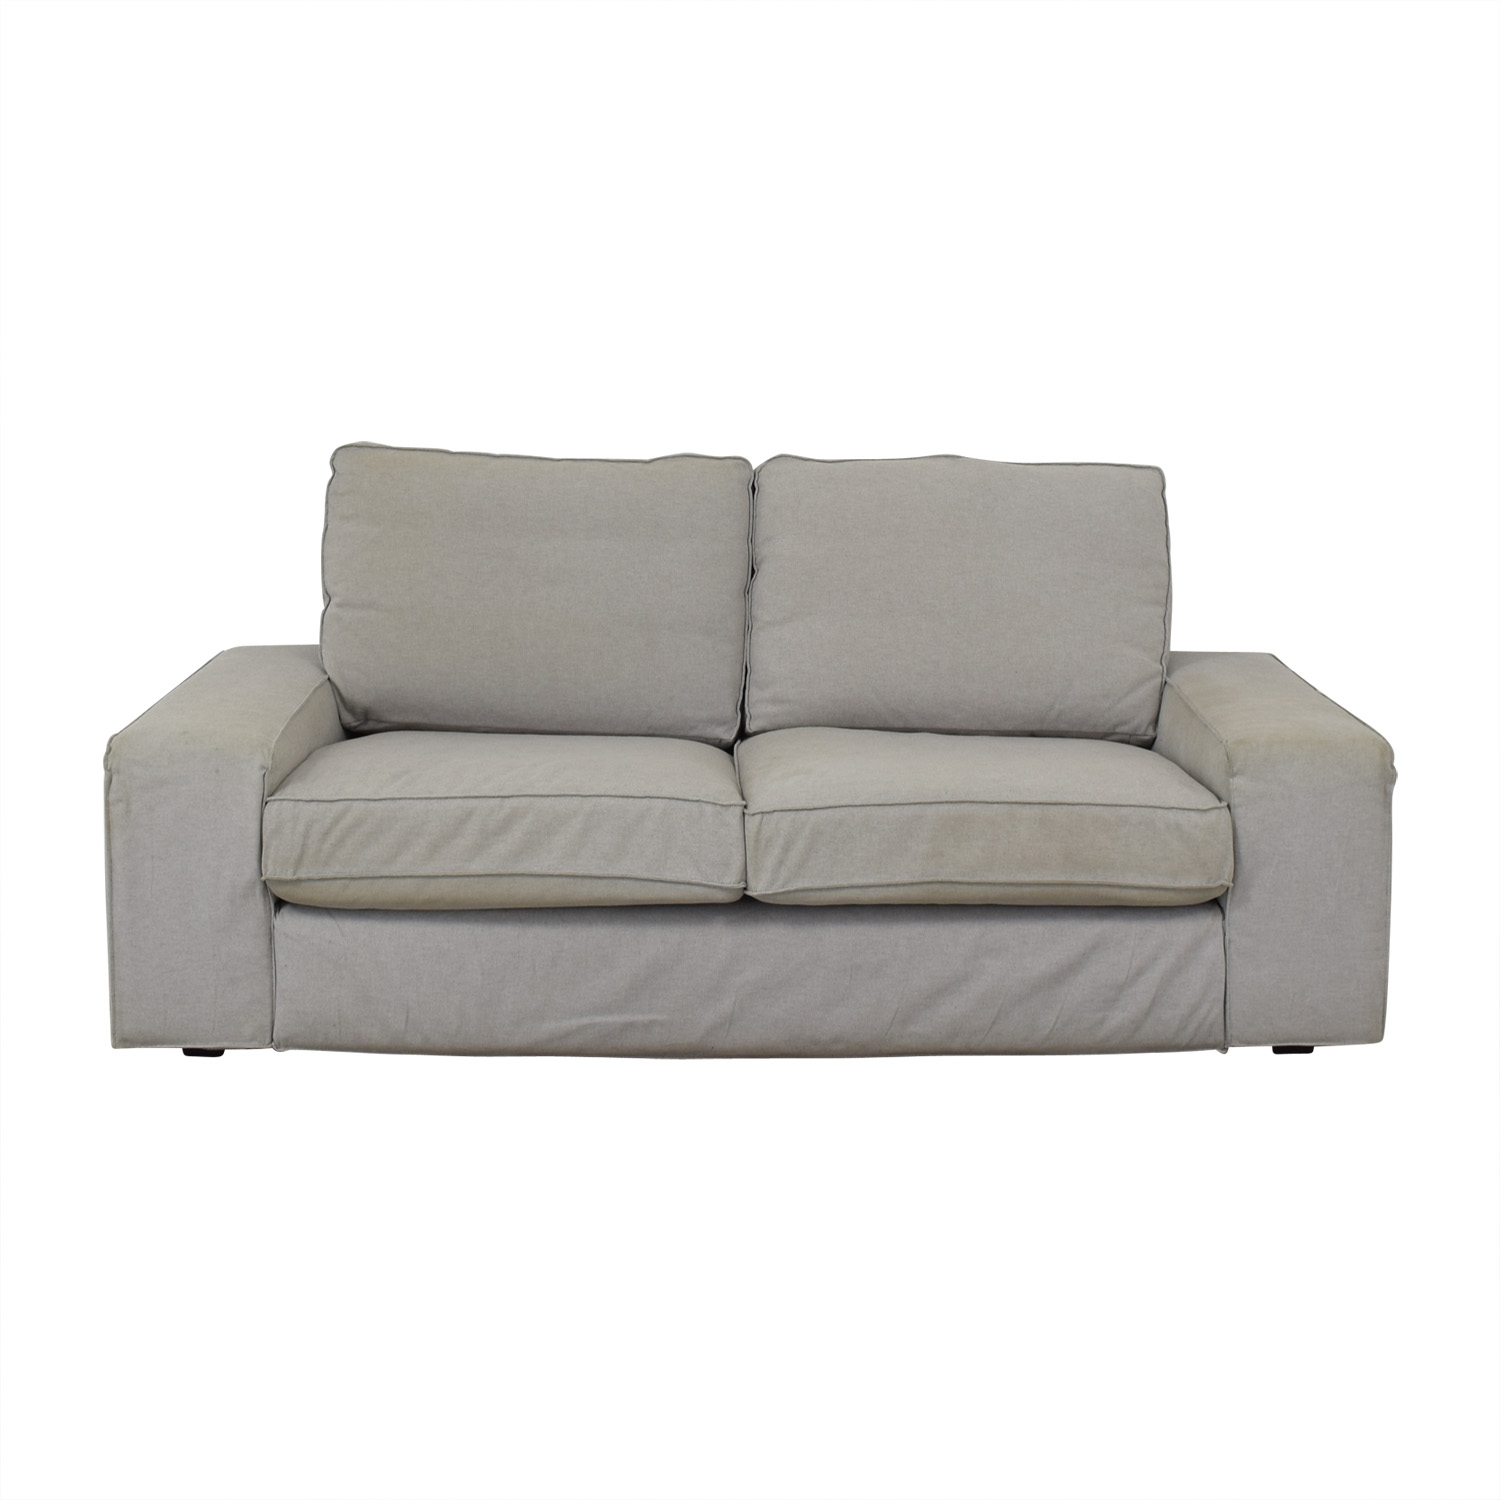 IKEA IKEA Kivik Light Grey Sofa Loveseats